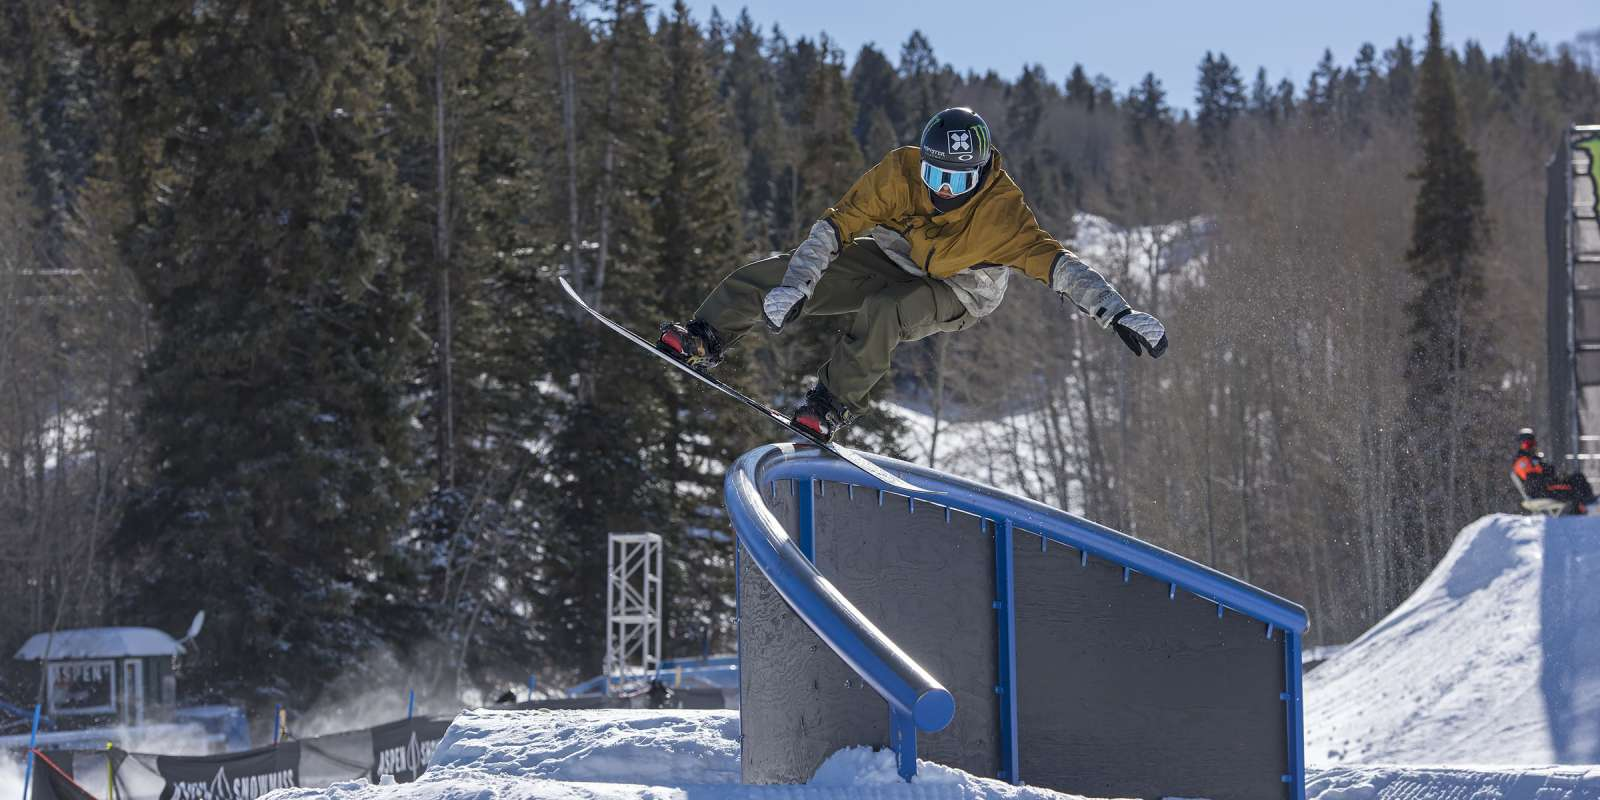 Monster athletes at the 2018 Winter X-Games in Aspen, Colorado